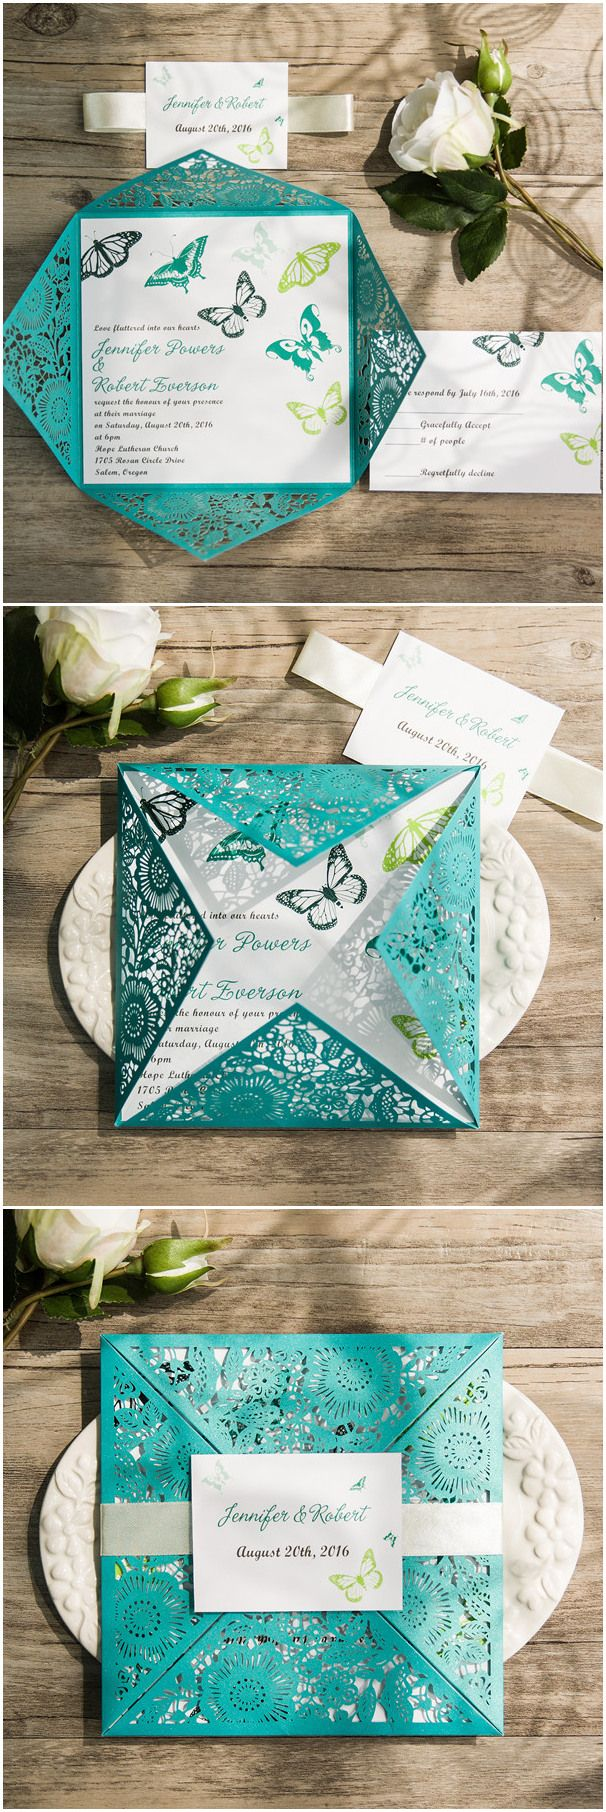 butterfly wedding butterfly wedding invitations shades of blue and green butterfly themed laser cut wedding invitations ewws